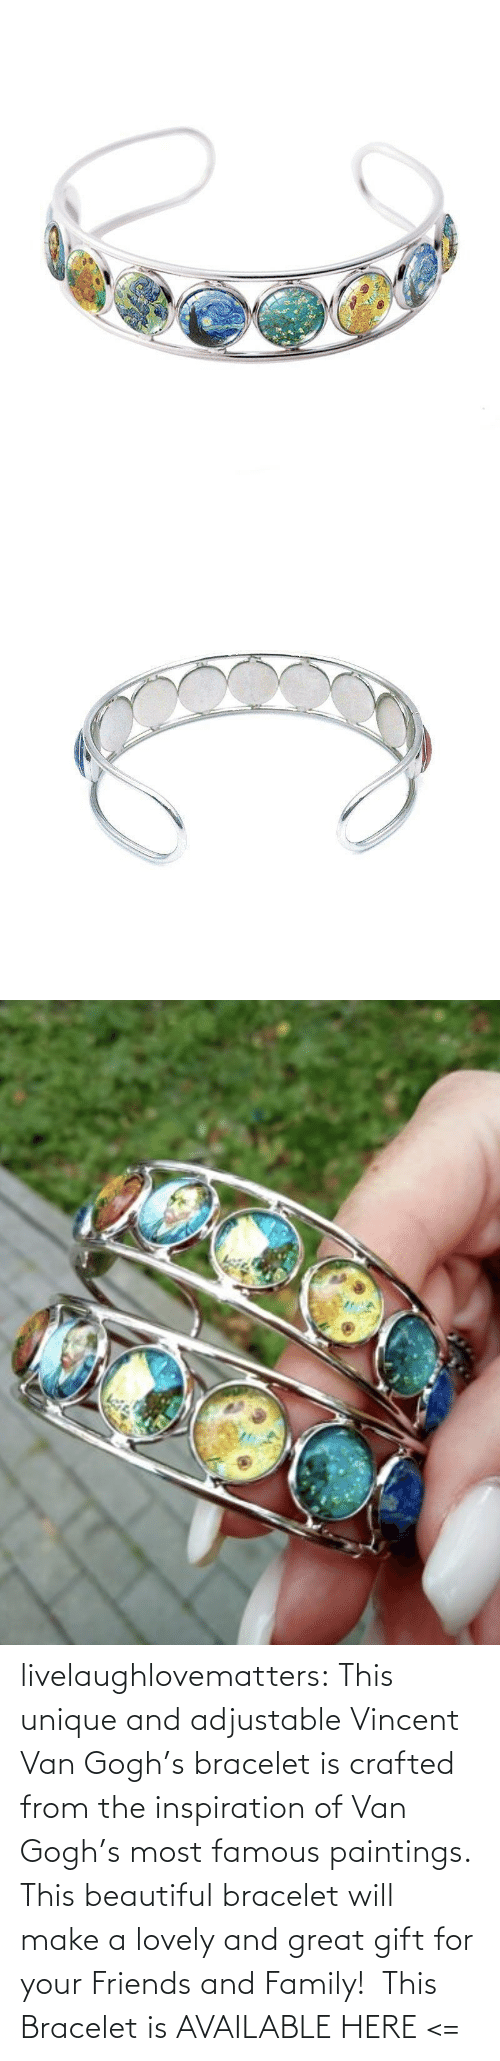 van gogh: livelaughlovematters: This unique and adjustable Vincent Van Gogh's bracelet is crafted from the inspiration of Van Gogh's most famous paintings. This beautiful bracelet will make a lovely and great gift for your Friends and Family!  This Bracelet is AVAILABLE HERE <=